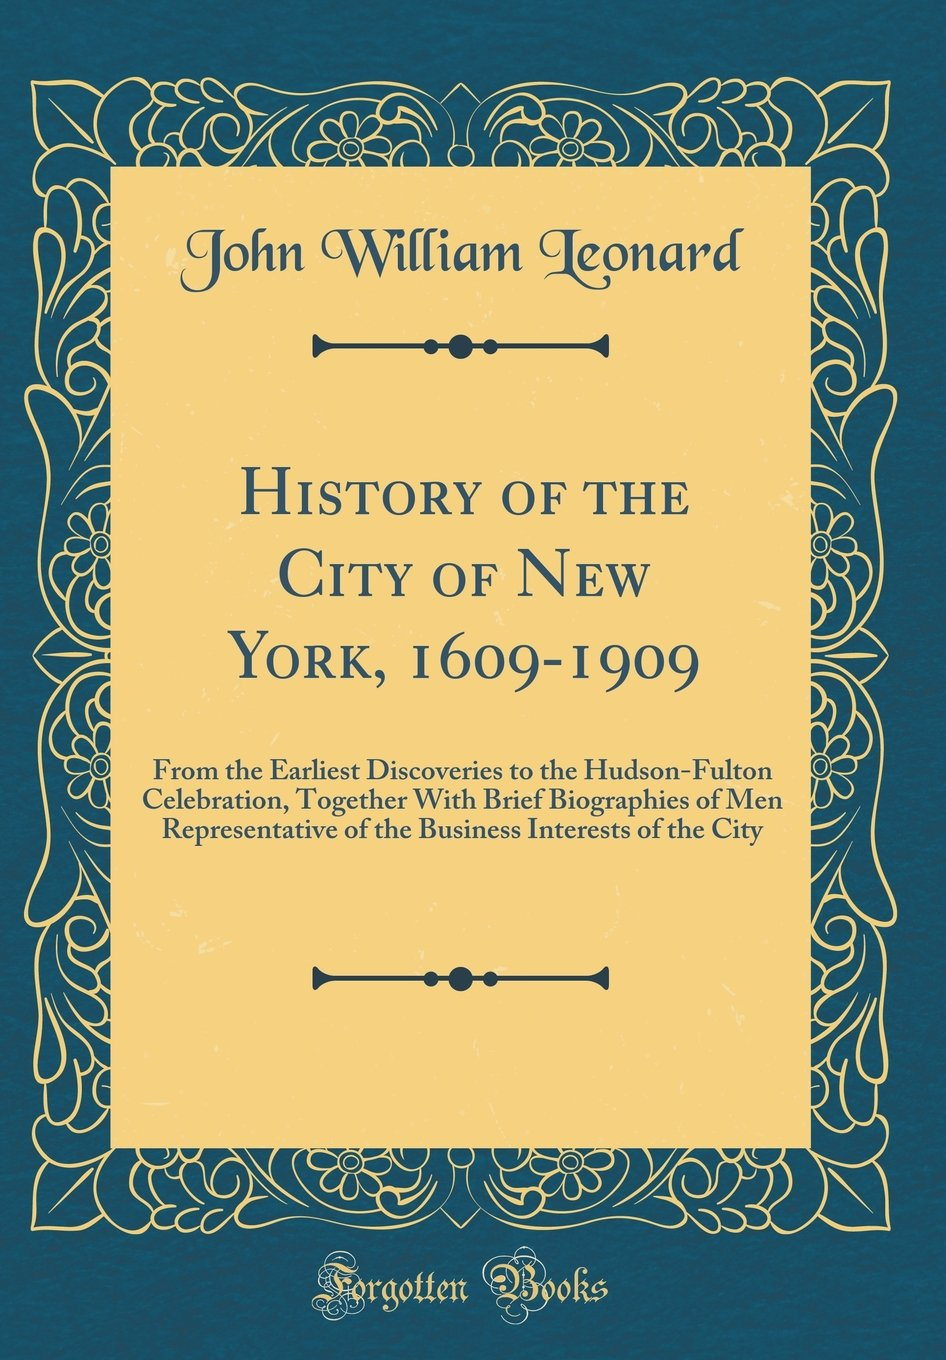 History of the City of New York, 1609-1909: From the Earliest Discoveries to the Hudson-Fulton Celebration, Together With Brief Biographies of Men ... Interests of the City (Classic Reprint) PDF ePub ebook